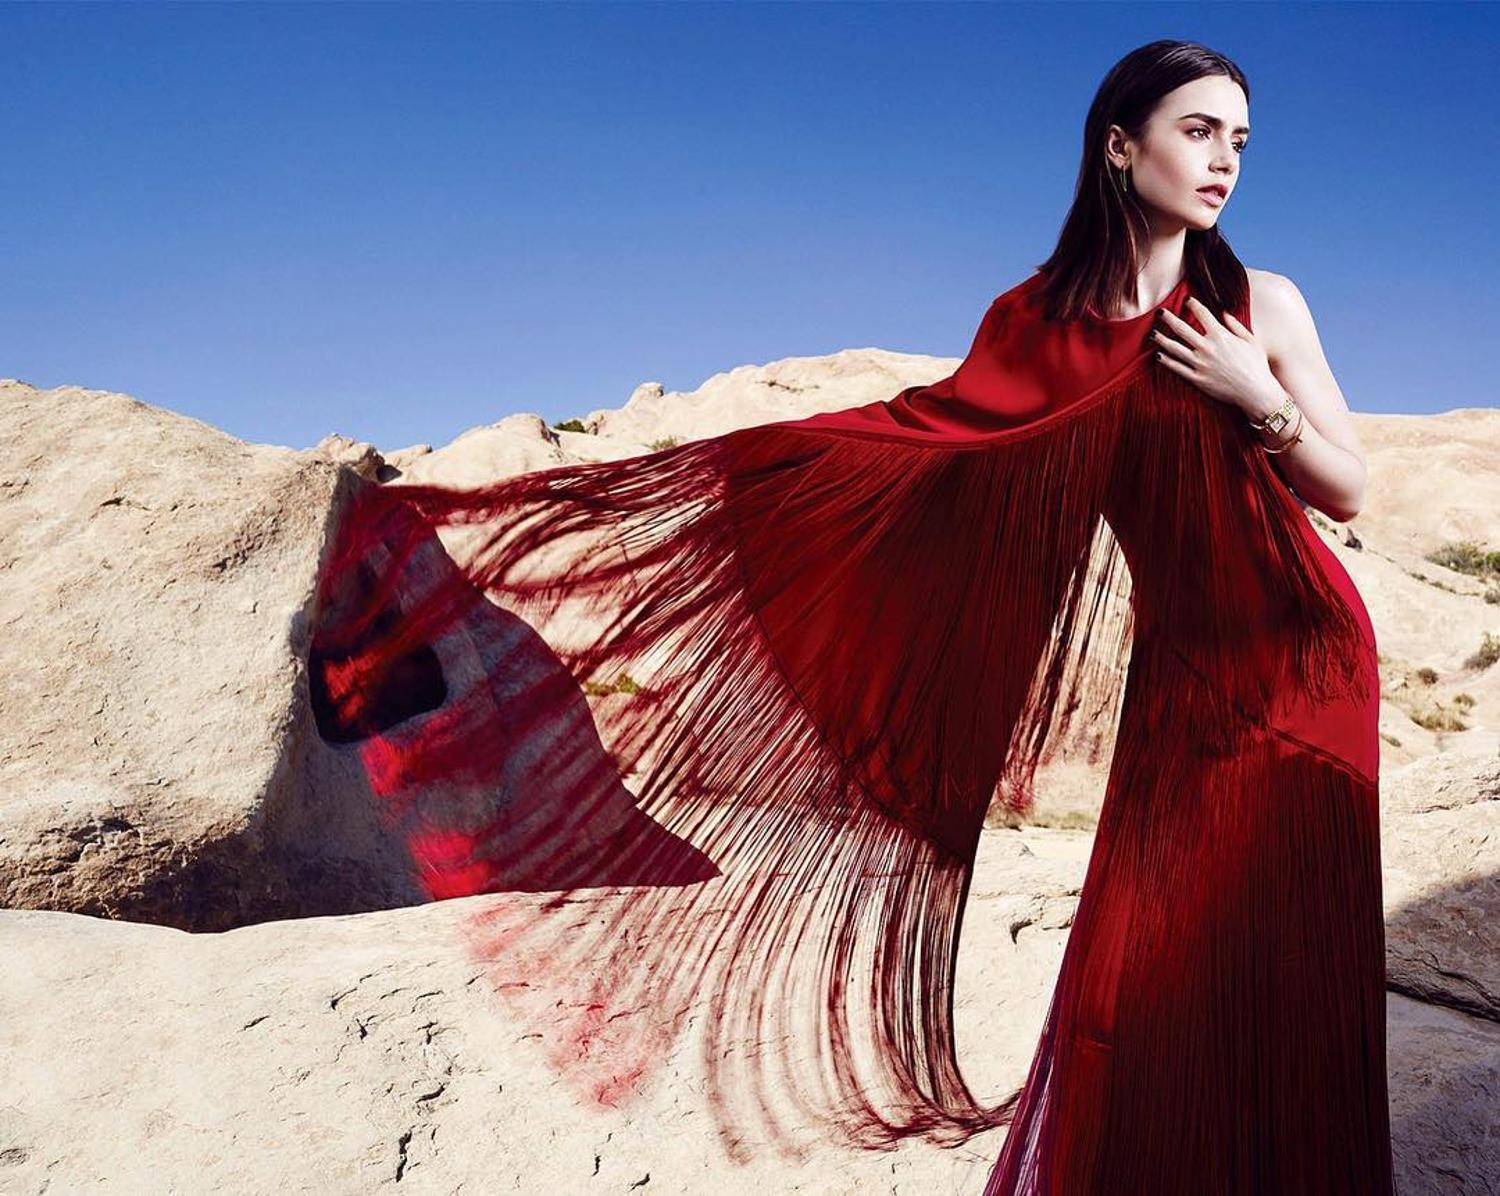 Lily Collins Lovely Lovely Picture and Photo